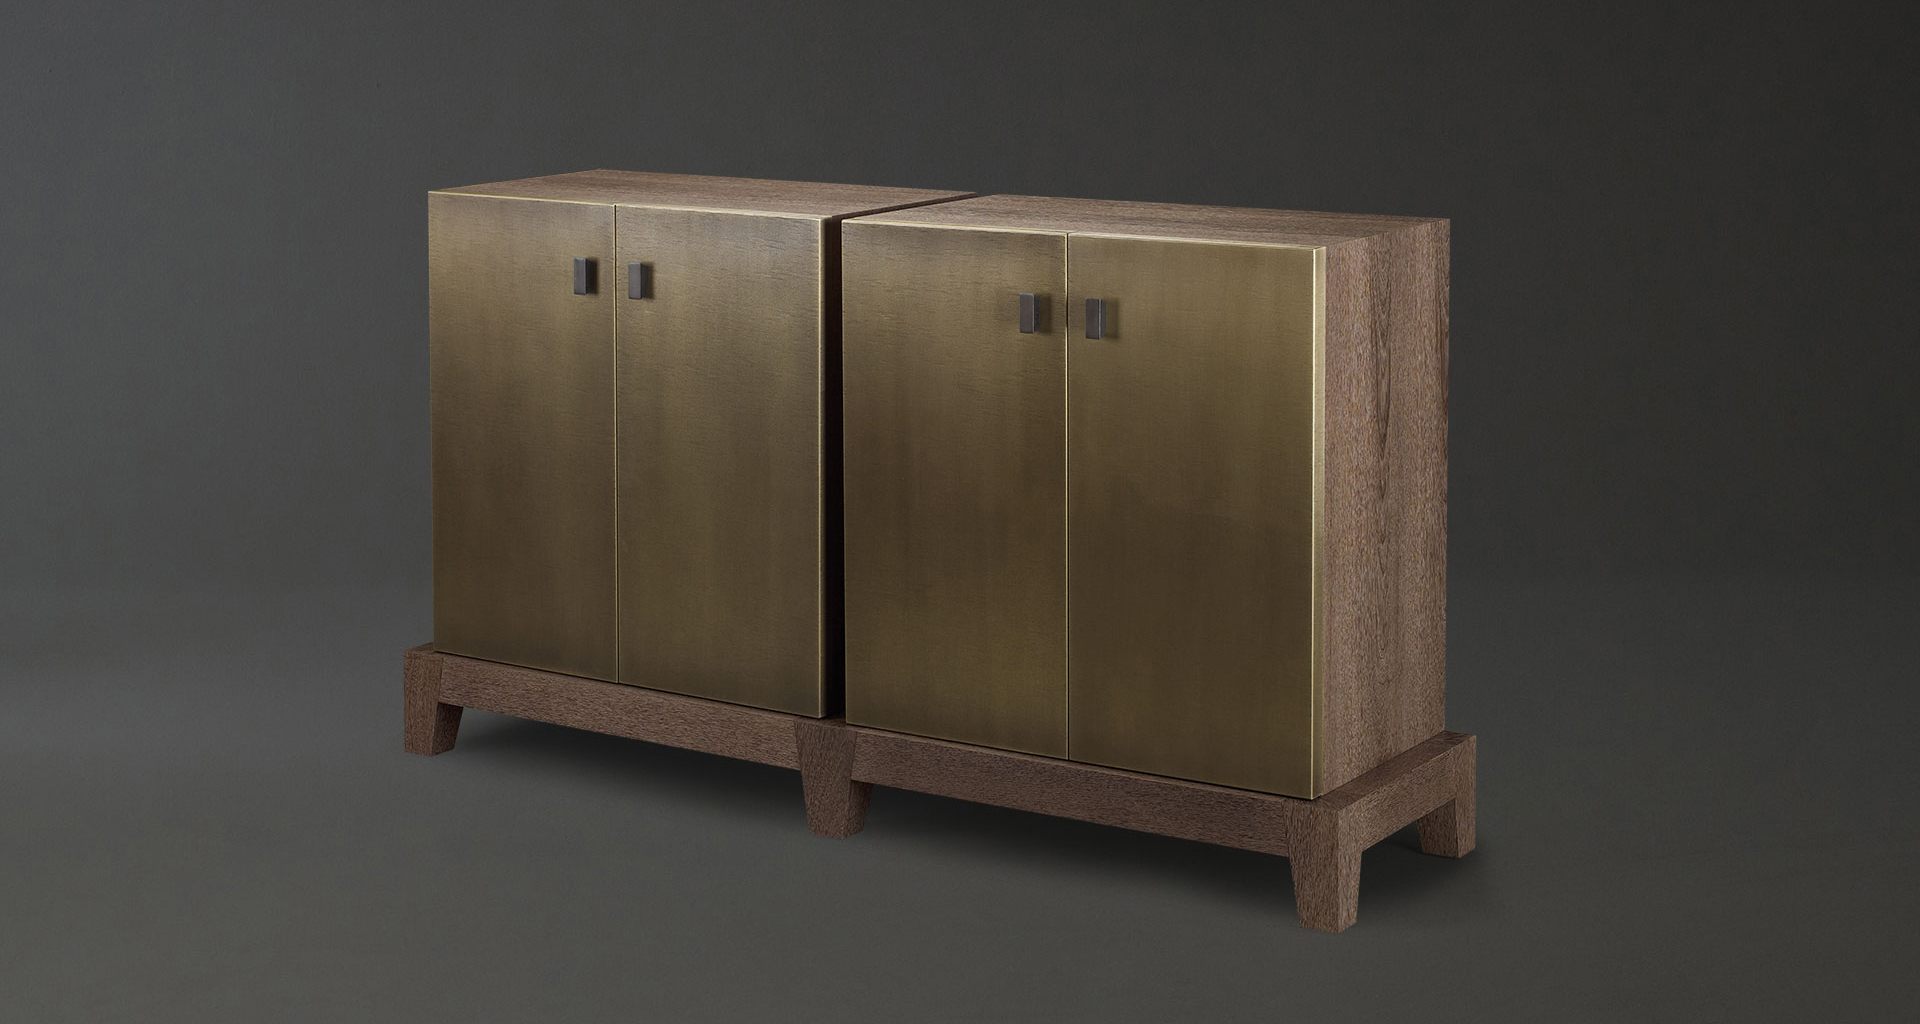 Amarcord is a wooden modular cabinet with doors or drawers and buit-in or bronze handles from the Promemoria's catalogue | Promemoria